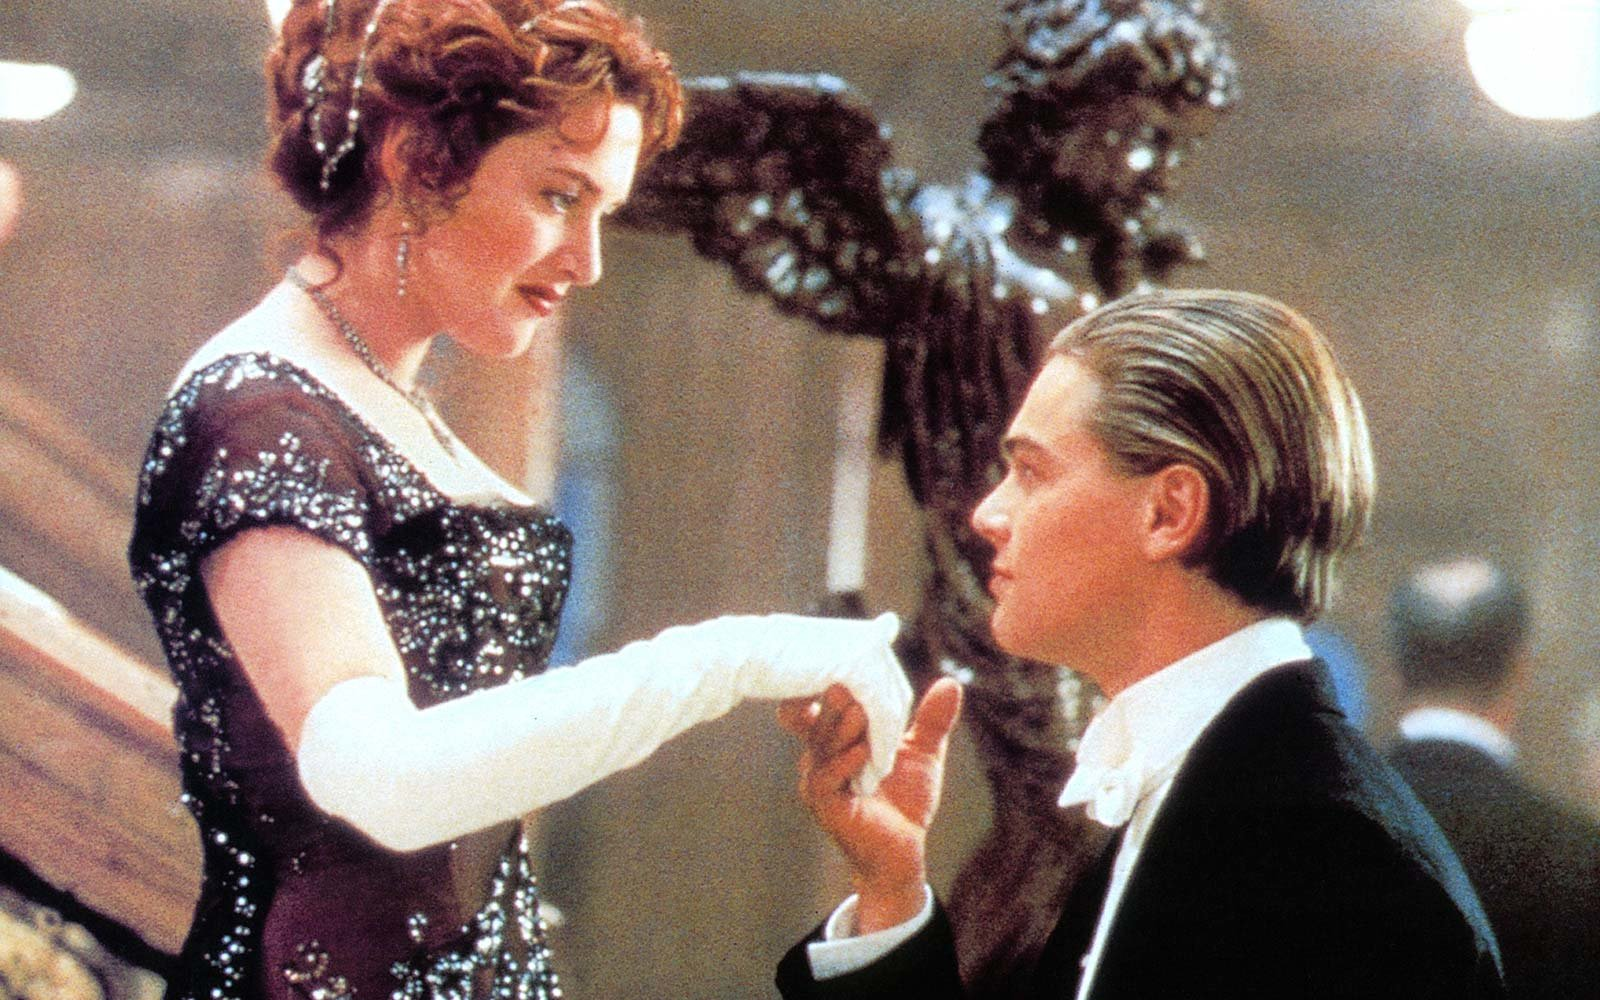 Kate Winslet offers her hand to Leonardo DiCaprio in a scene from the film 'Titanic', 1997